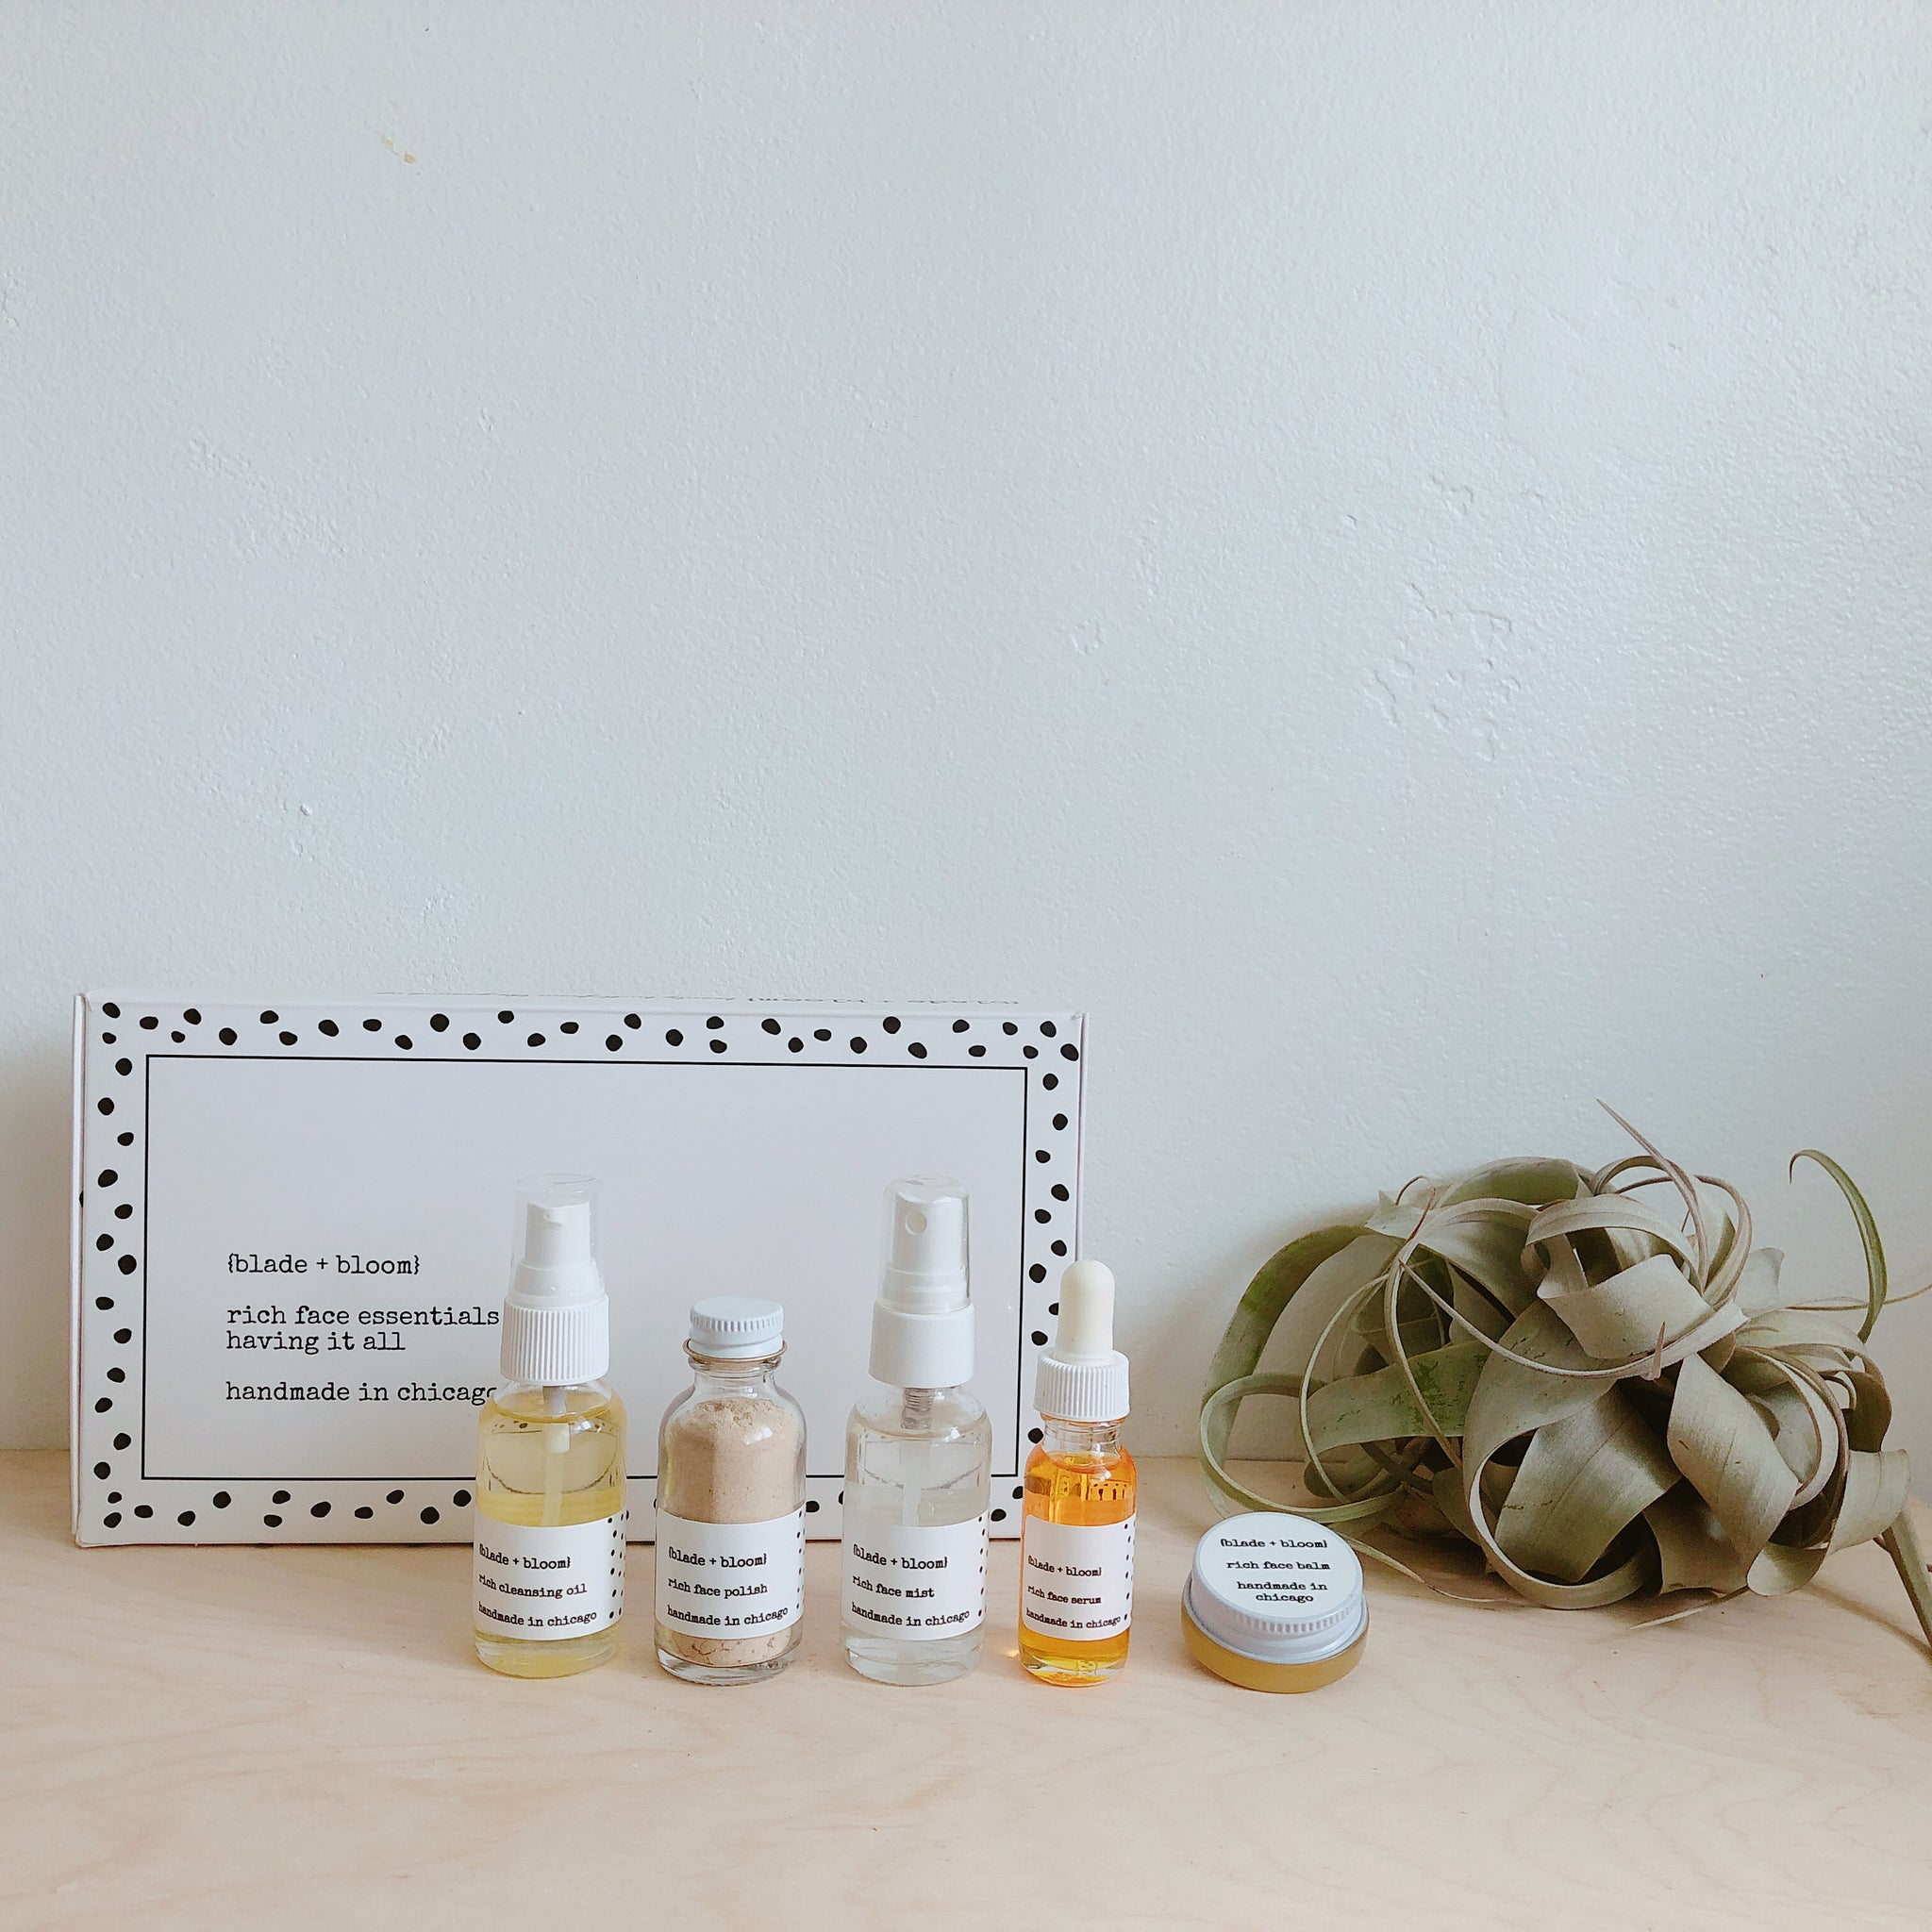 rich face essentials set / having it all